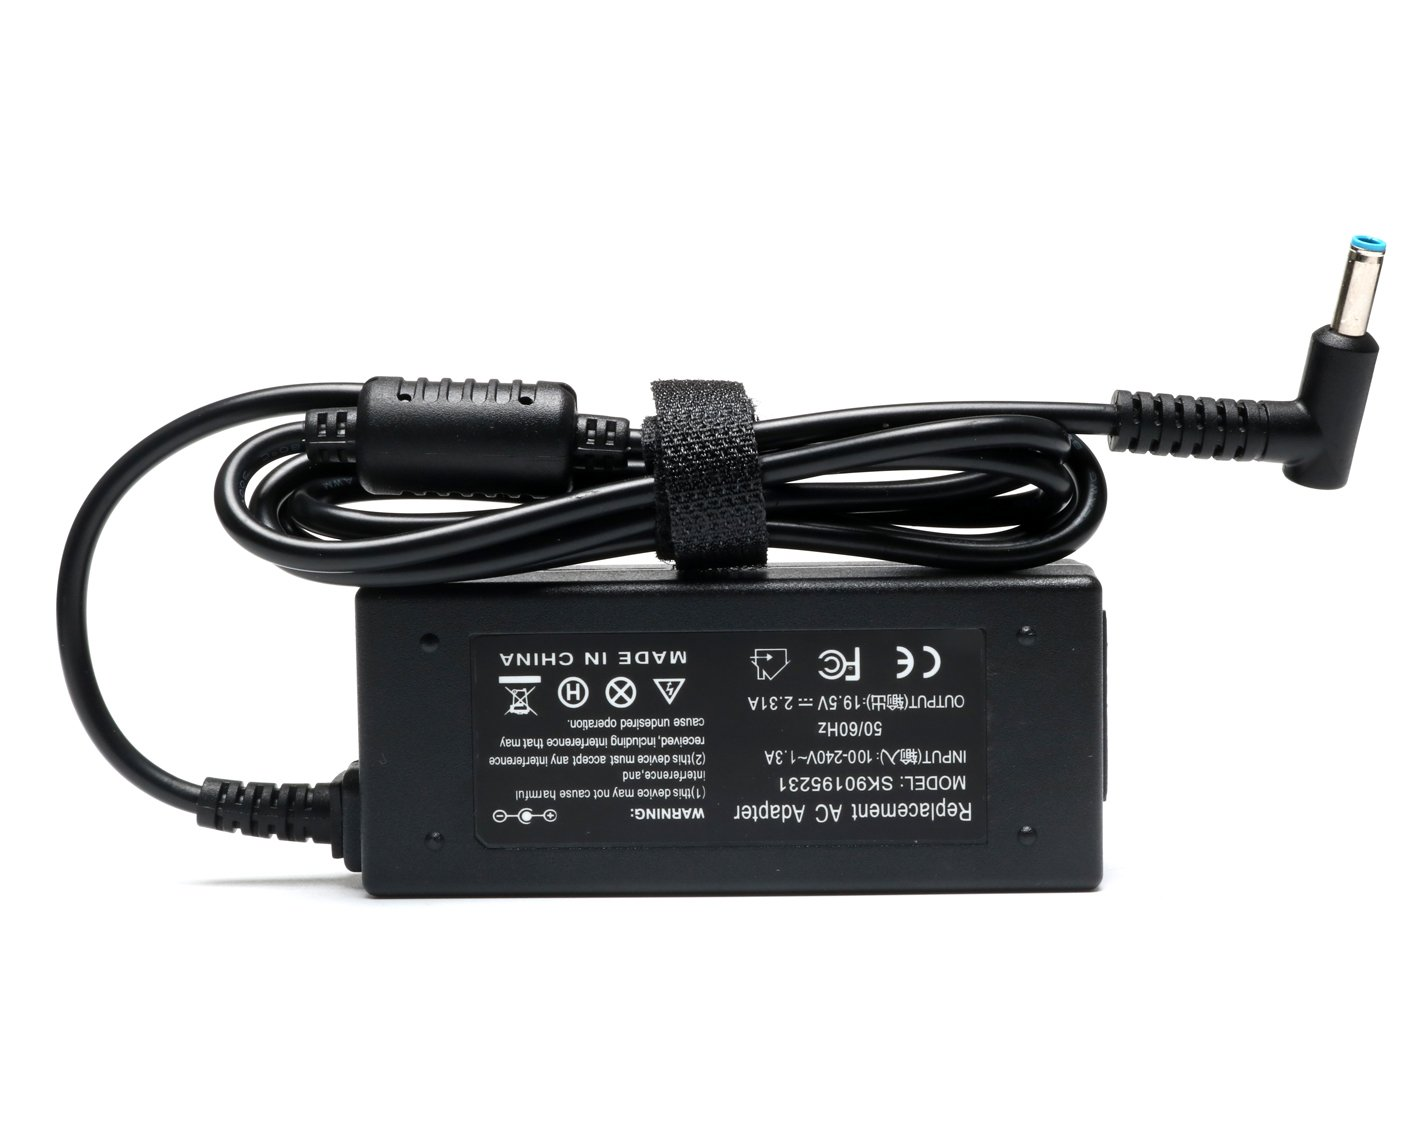 19V 2.31A 45W Ac Adapter/Power Cord Supply for Hp Stream 11 13 14; Hp Pavilion X2 11 13 15; P/N: 719309-001 719309-003 721092-001 741727-001 740015-001 HSTNN-CA40 ADP-45WD B by ROLADA (Image #2)